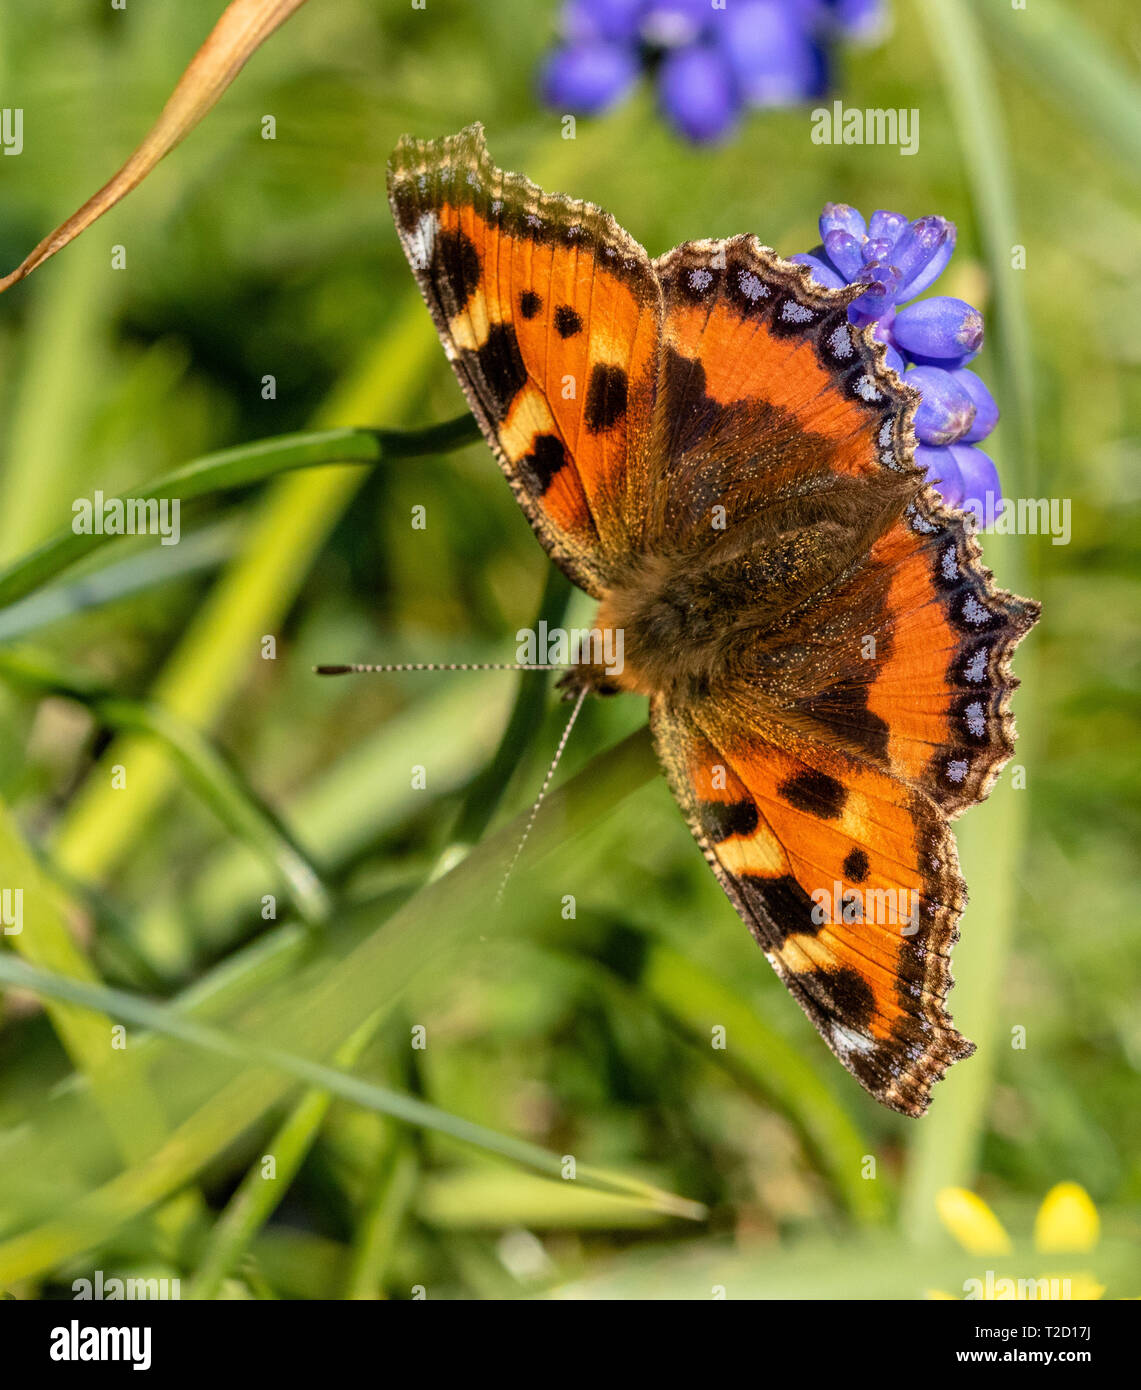 A small tortoiseshell butterfly feeding on nectar from a grape hyacinth flower. - Stock Image